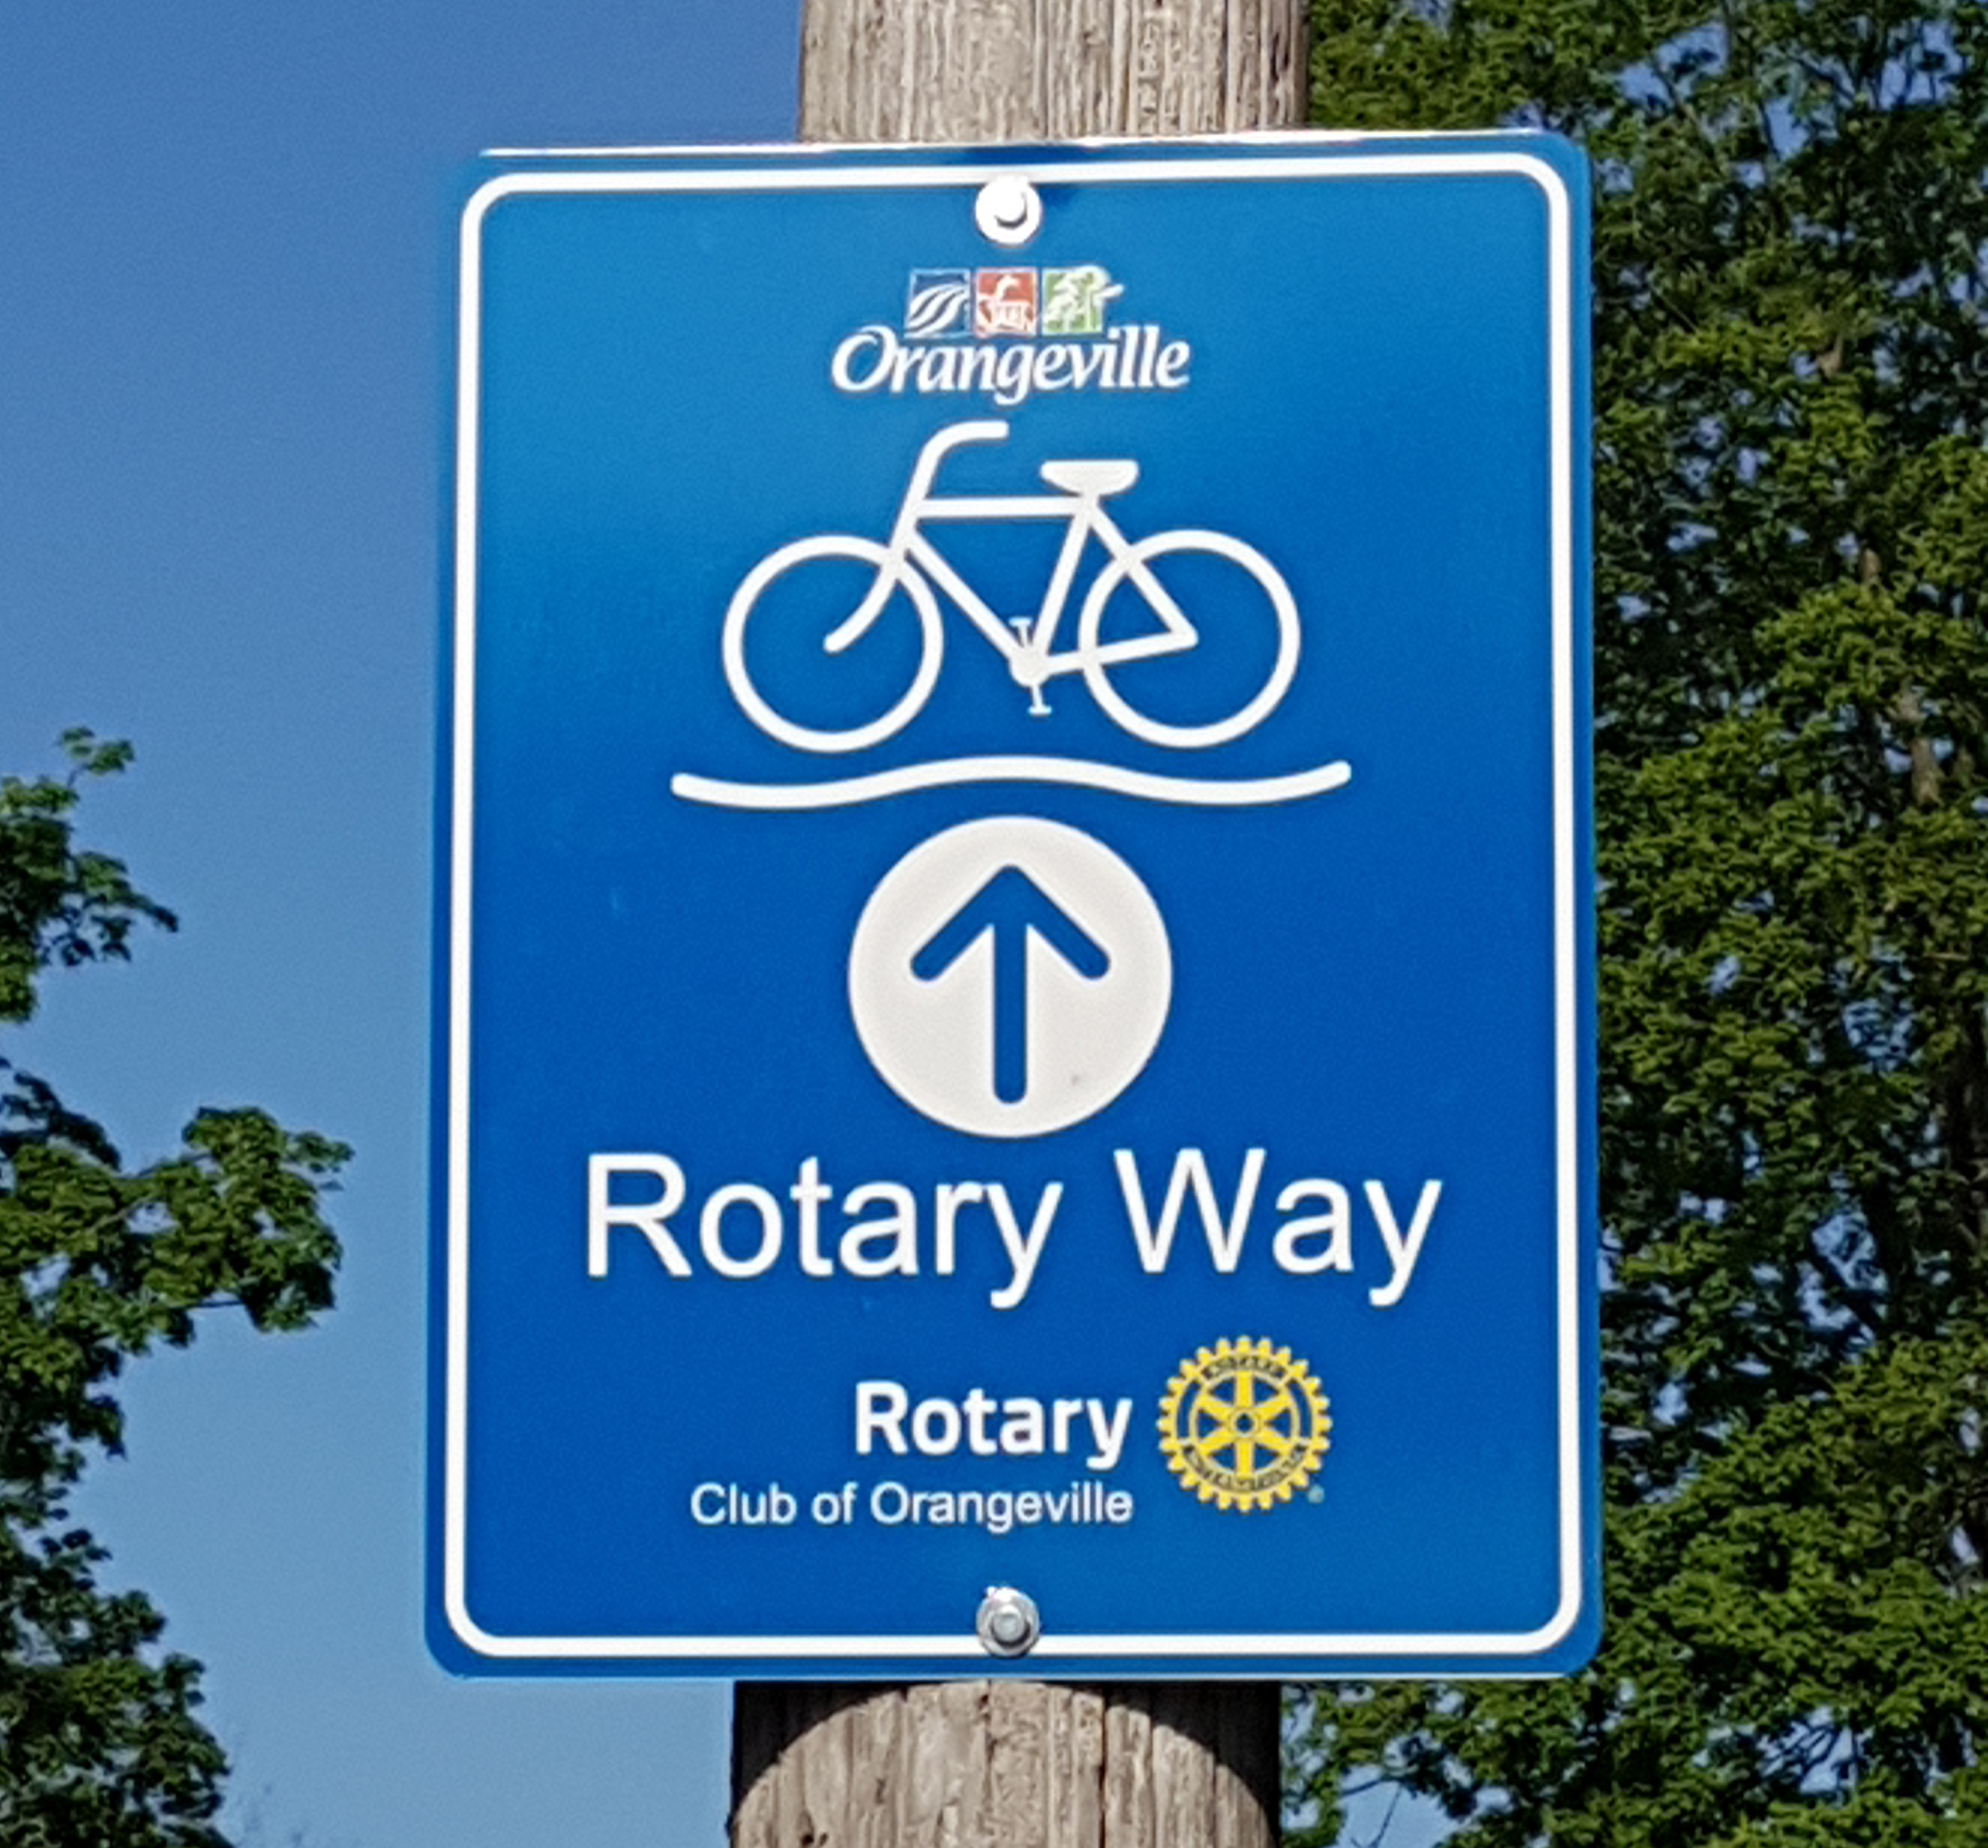 Rotary Way Bicycle Path